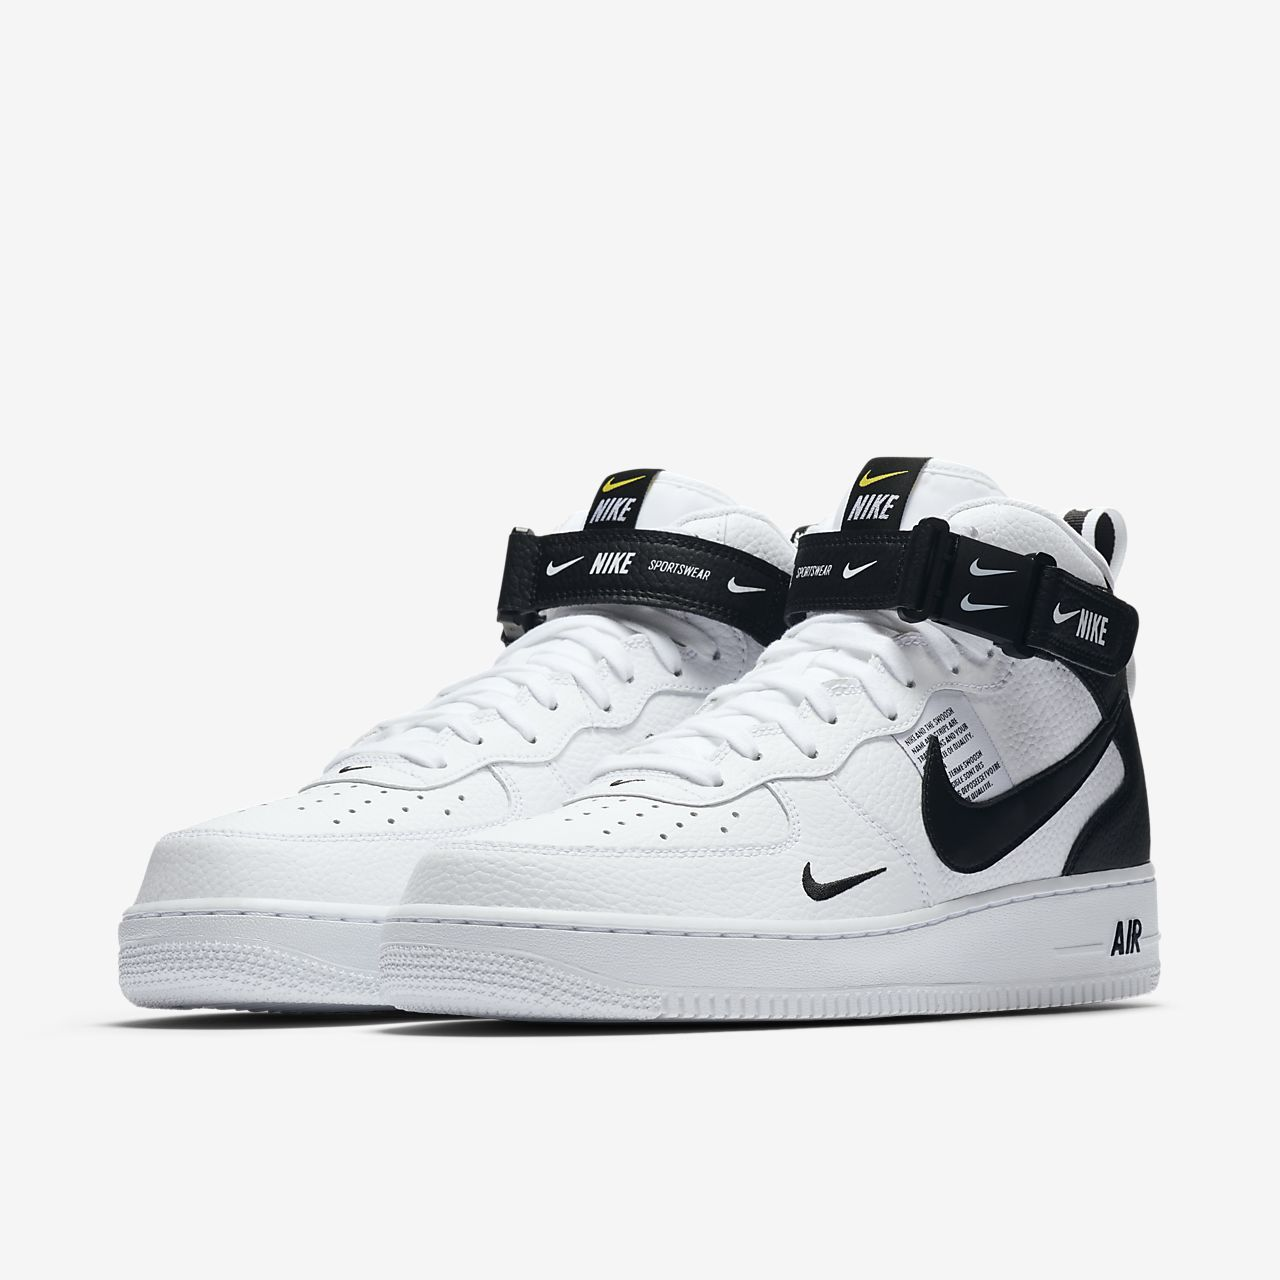 detailed look 7792d 86fb0 ... Nike Air Force 1 07 Mid LV8 Men s Shoe